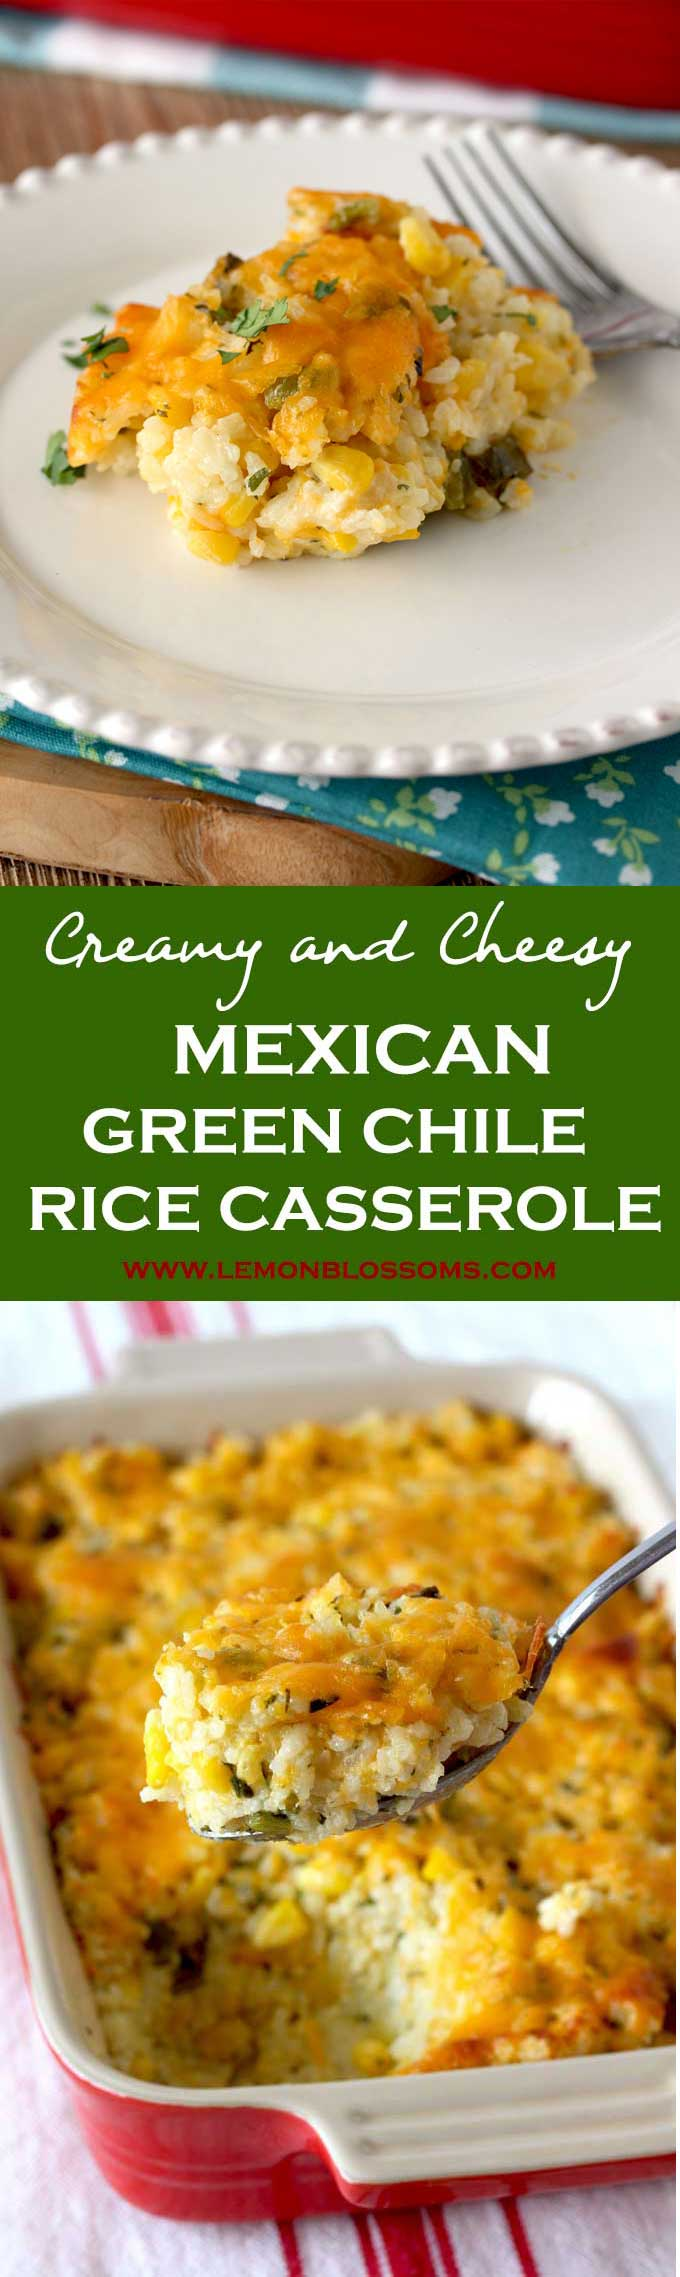 This Mexican Green Chile Rice Casserole is creamy, cheesy and irresistible. Baked with Corn, Roasted Chile Peppers, Sour Cream and Cheese, this is the perfect make-ahead side dish! #sidedish #rice #casserole #cheesy